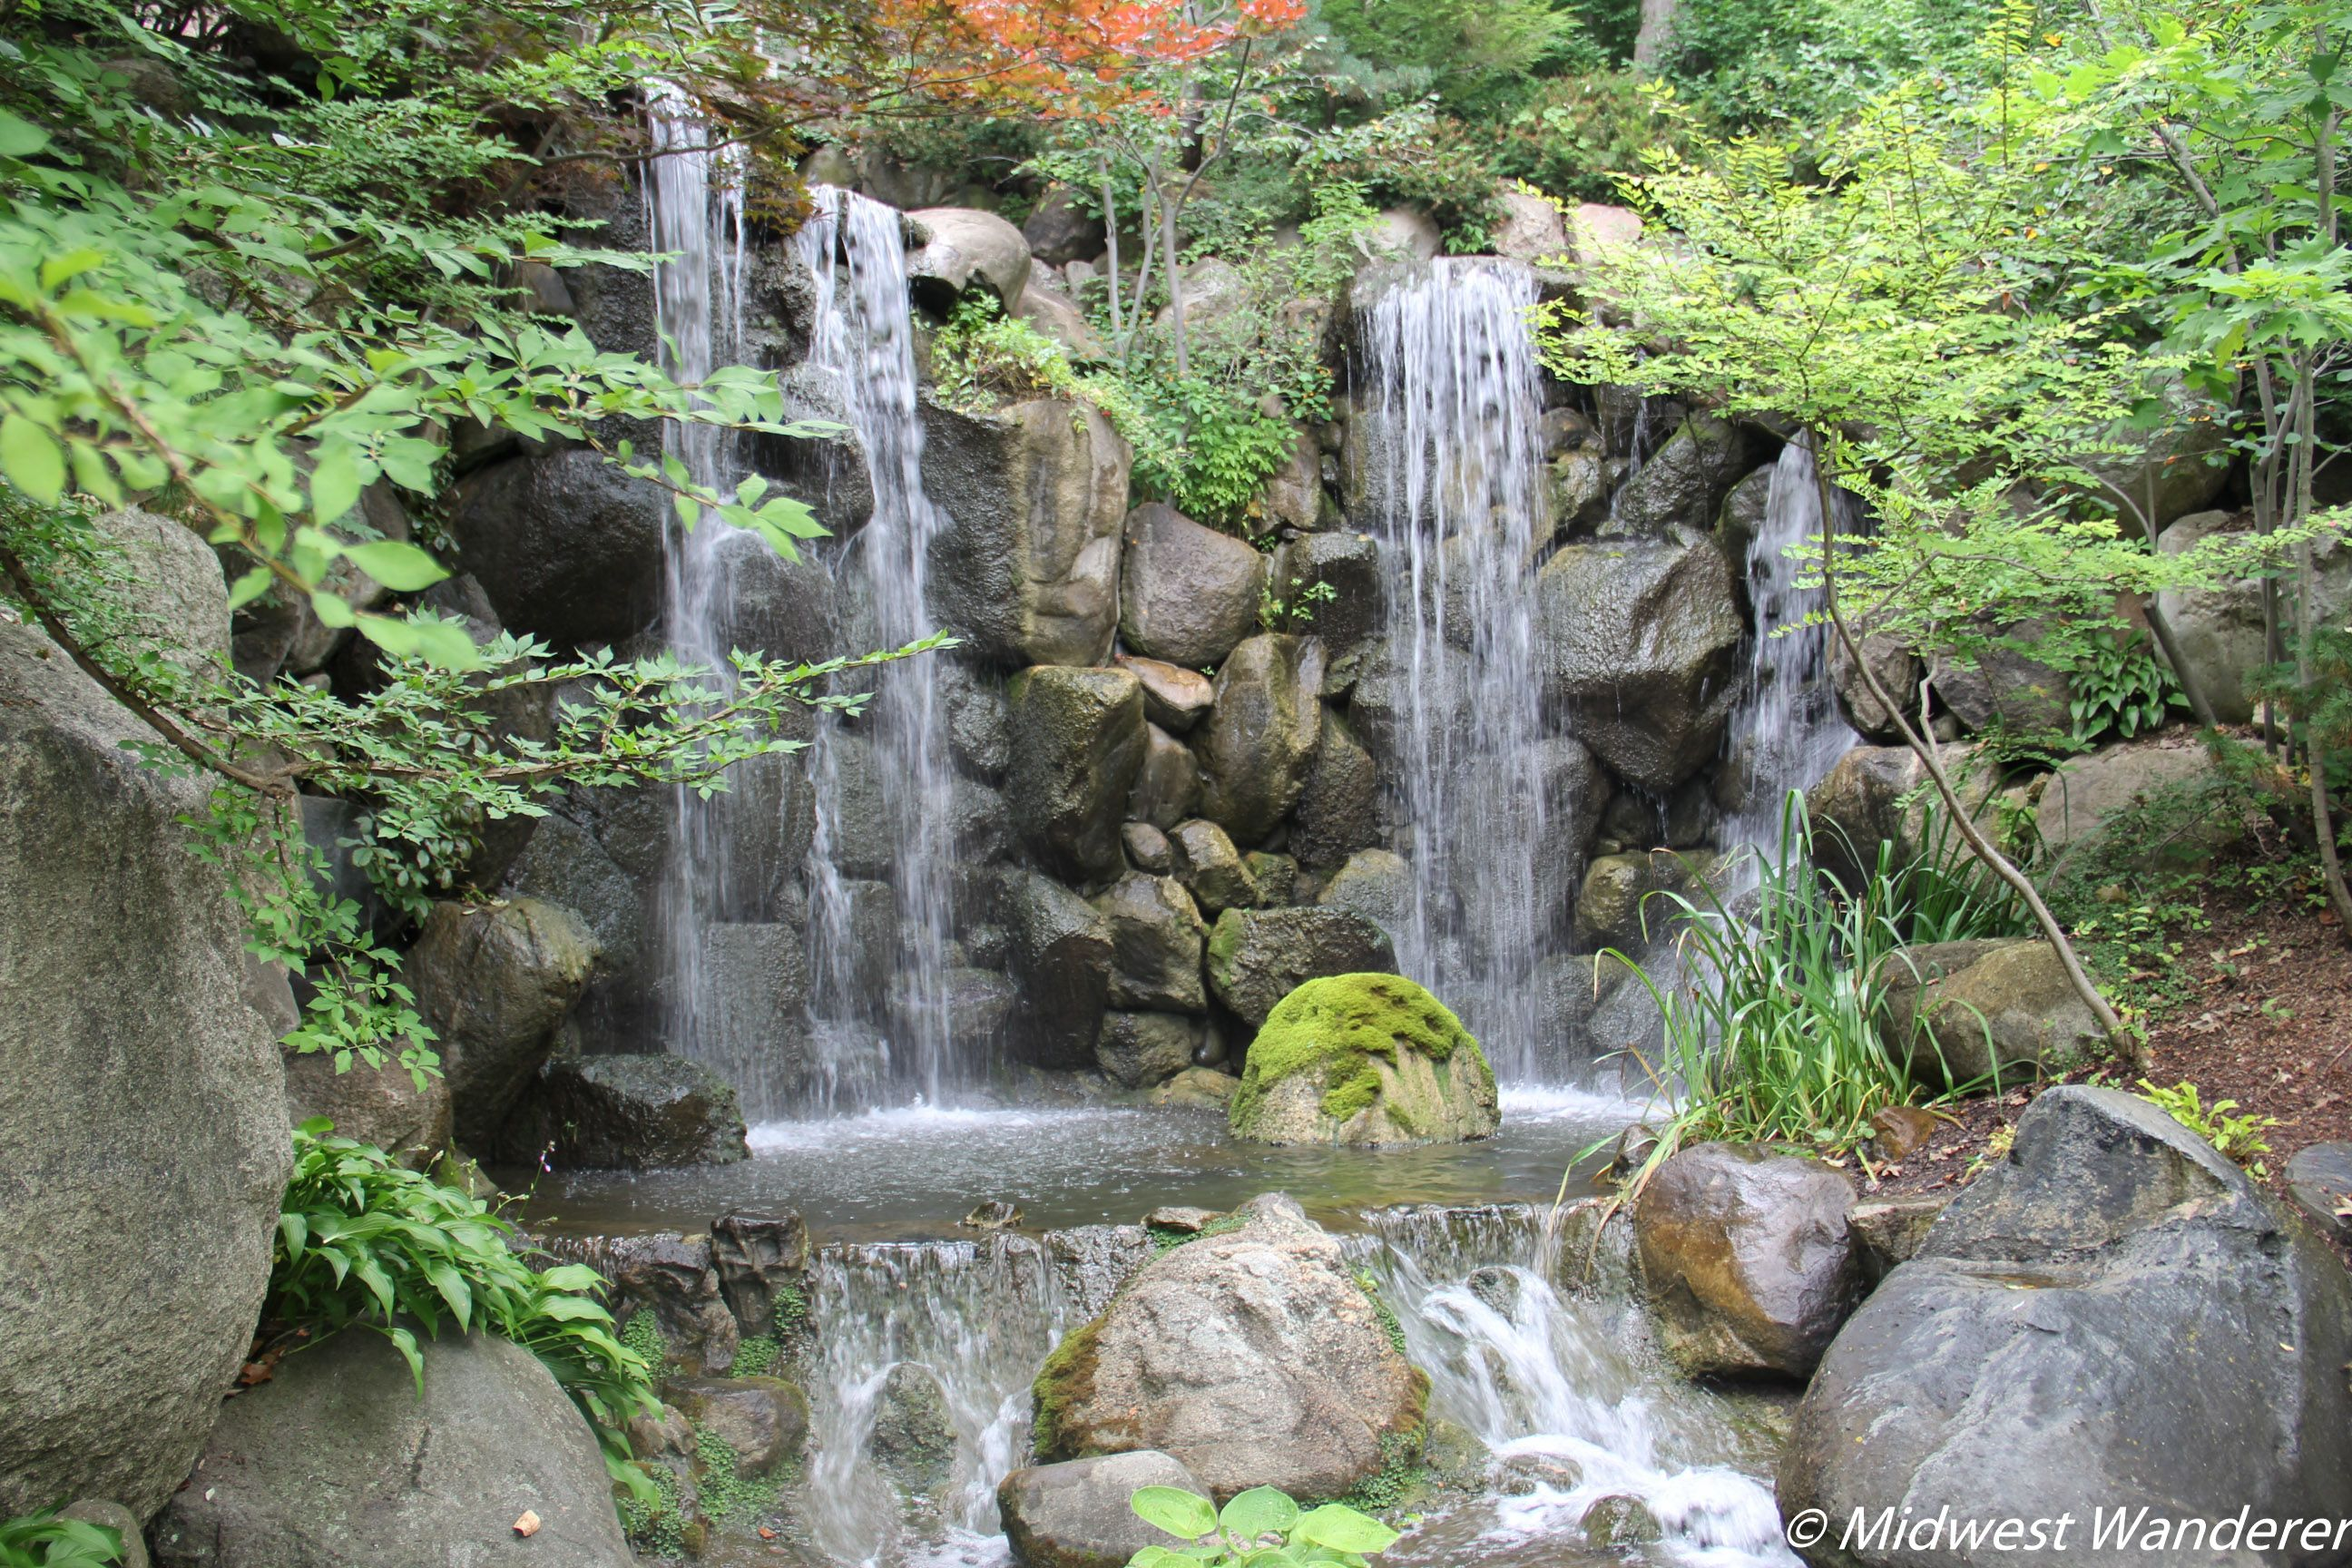 Twelve Acres Of Carefully Placed Plants, Stones, Ponds, And Waterfalls